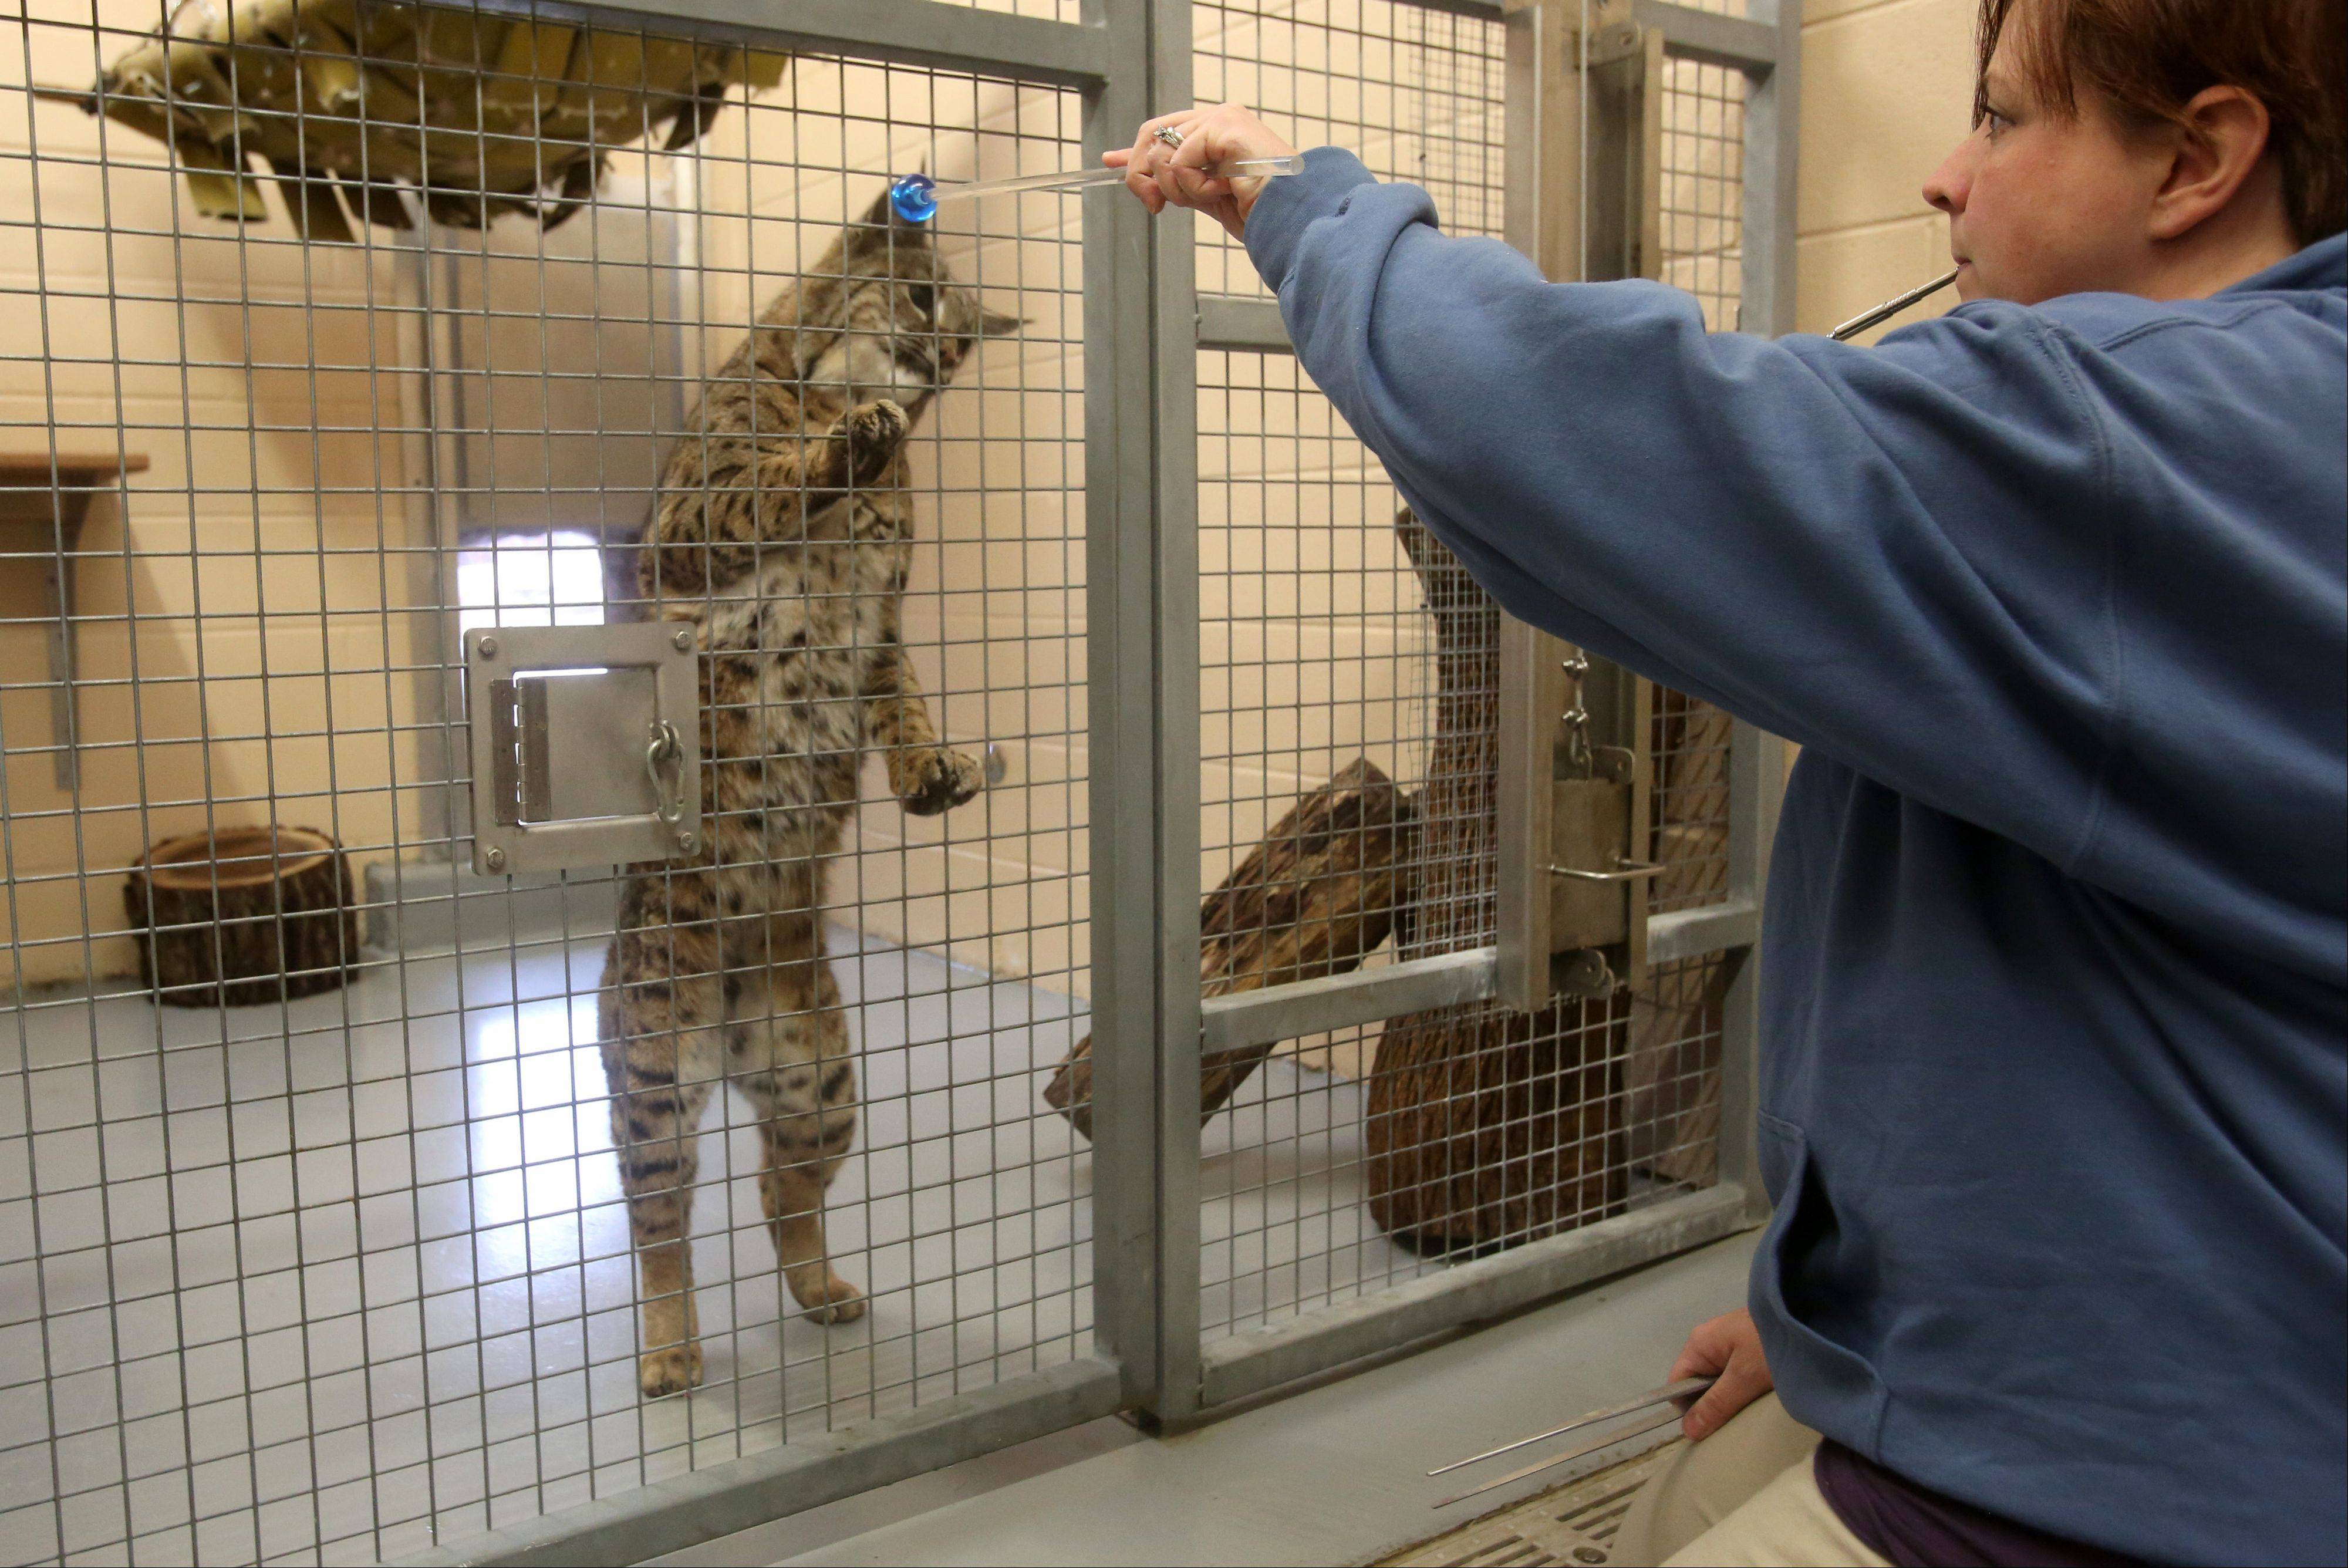 Cosley Zoo in Wheaton offers a half-hour program each day that allows visitors to go behind the scenes at the bobcat exhibit. Zookeeper Jenny Theuman feeds bobcat Sal a mixture of mice, quail and chicken.